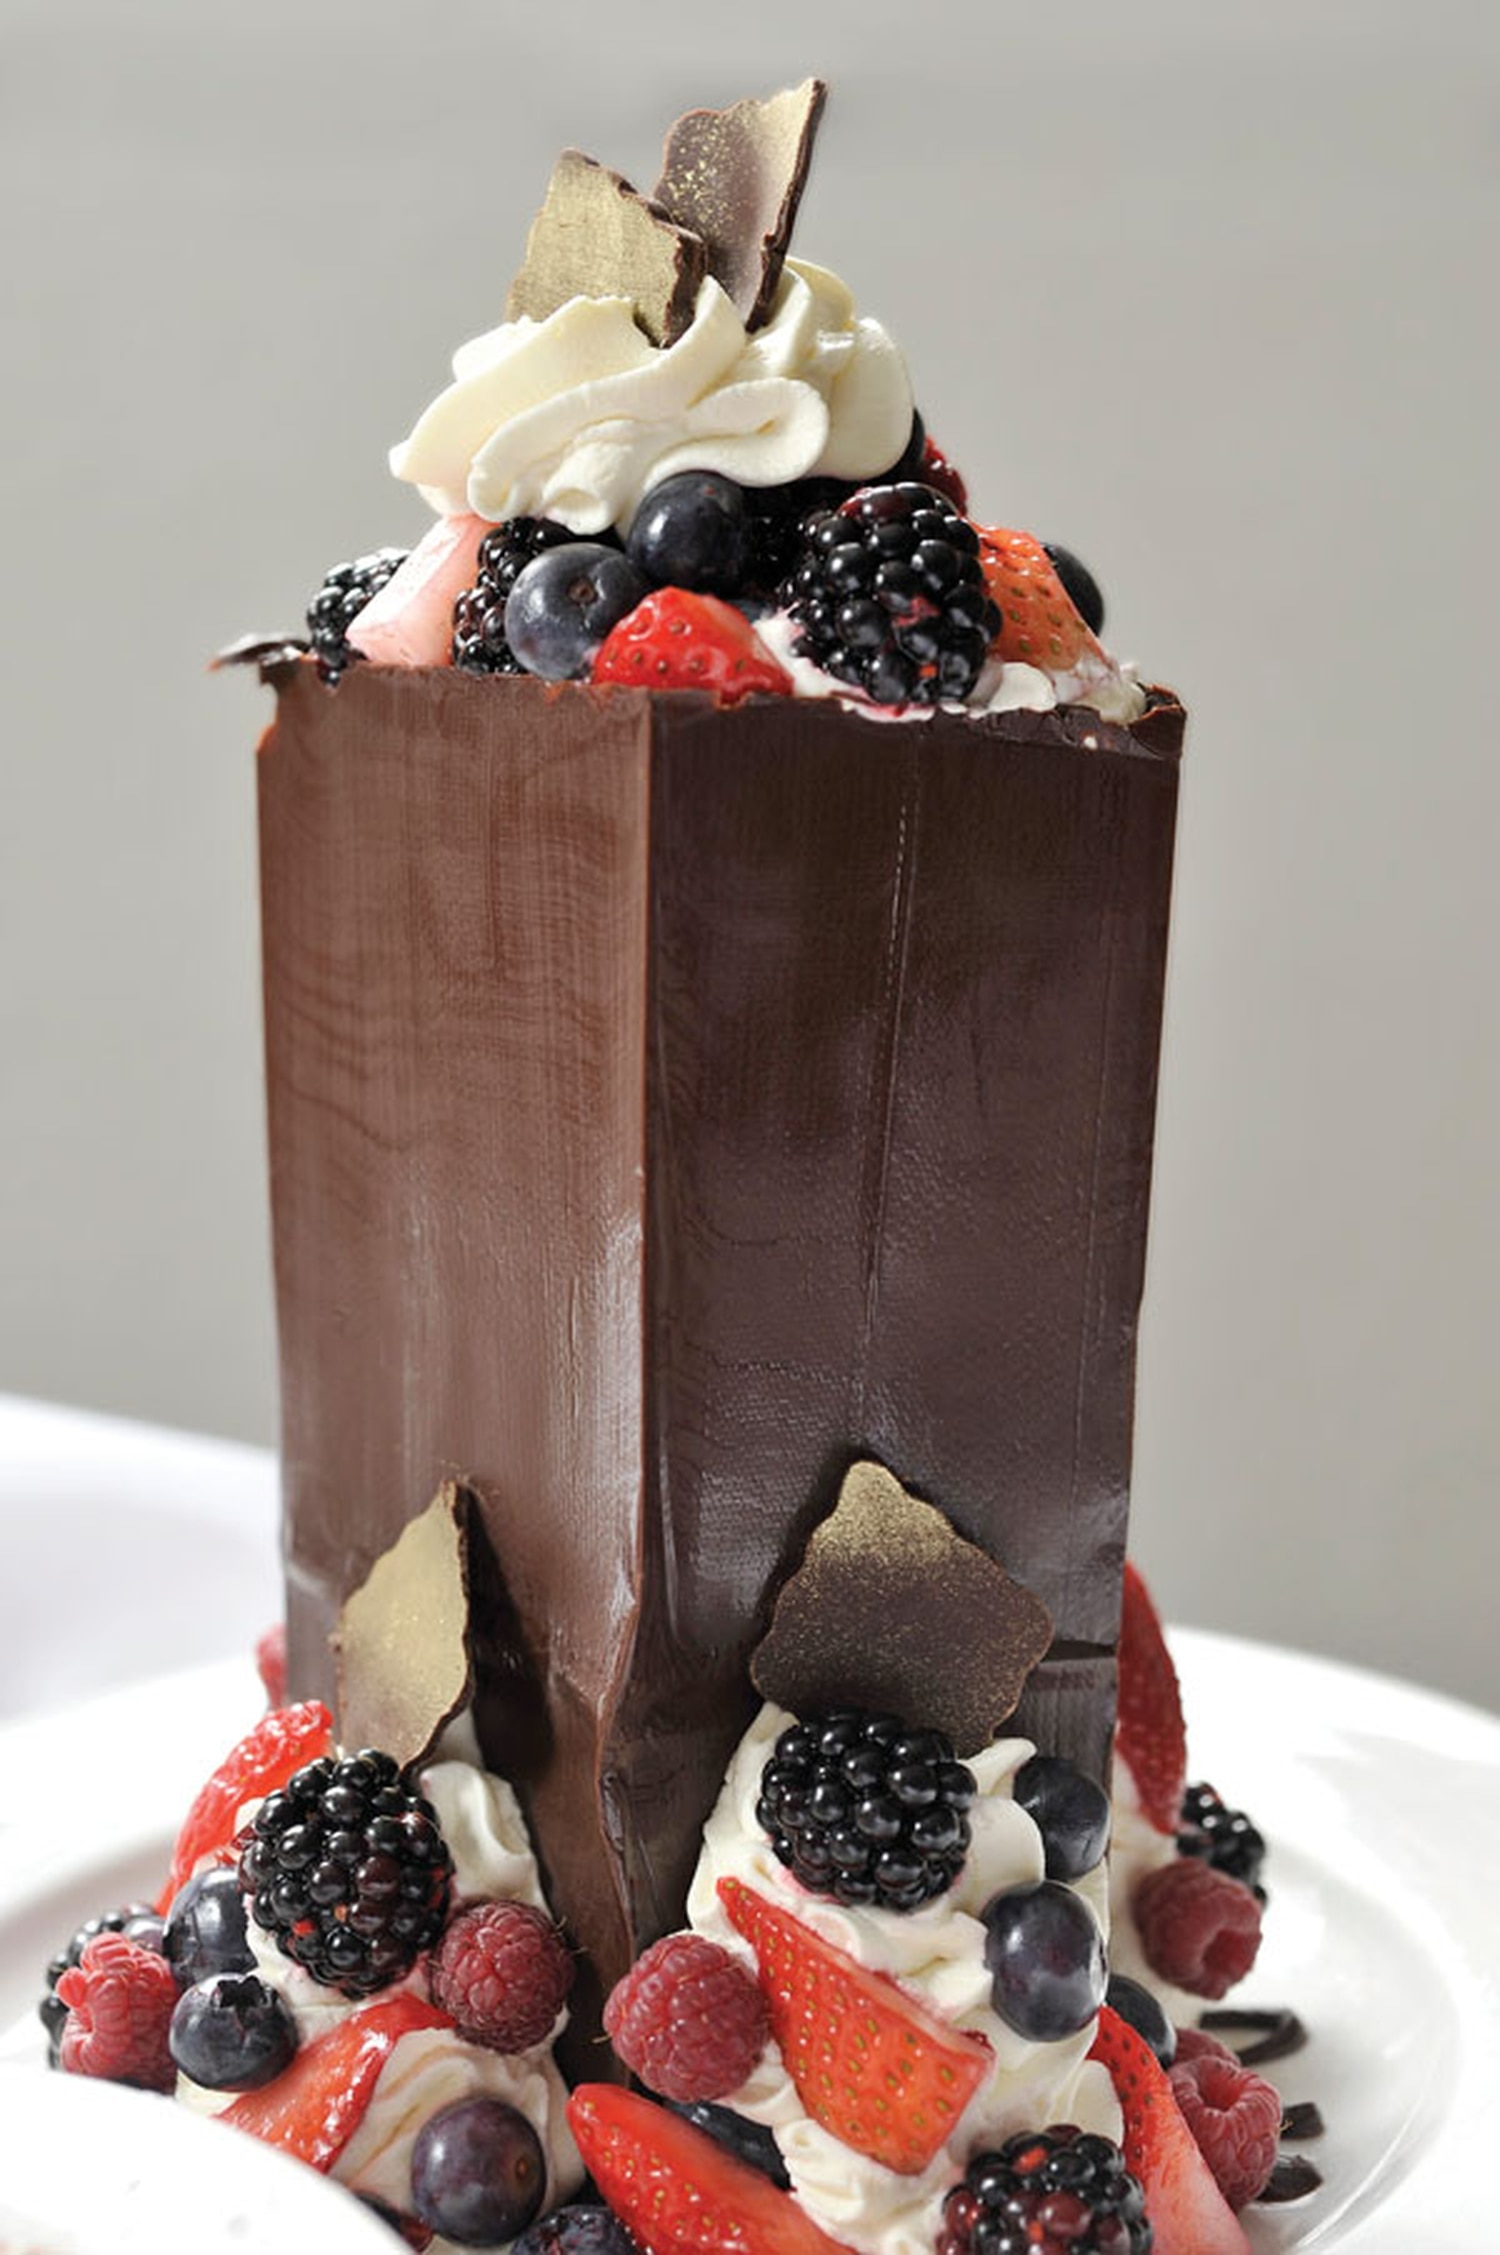 The Maven's Chocolate Sack, filled with berries, cake, caramel sauce and fresh whipped cream